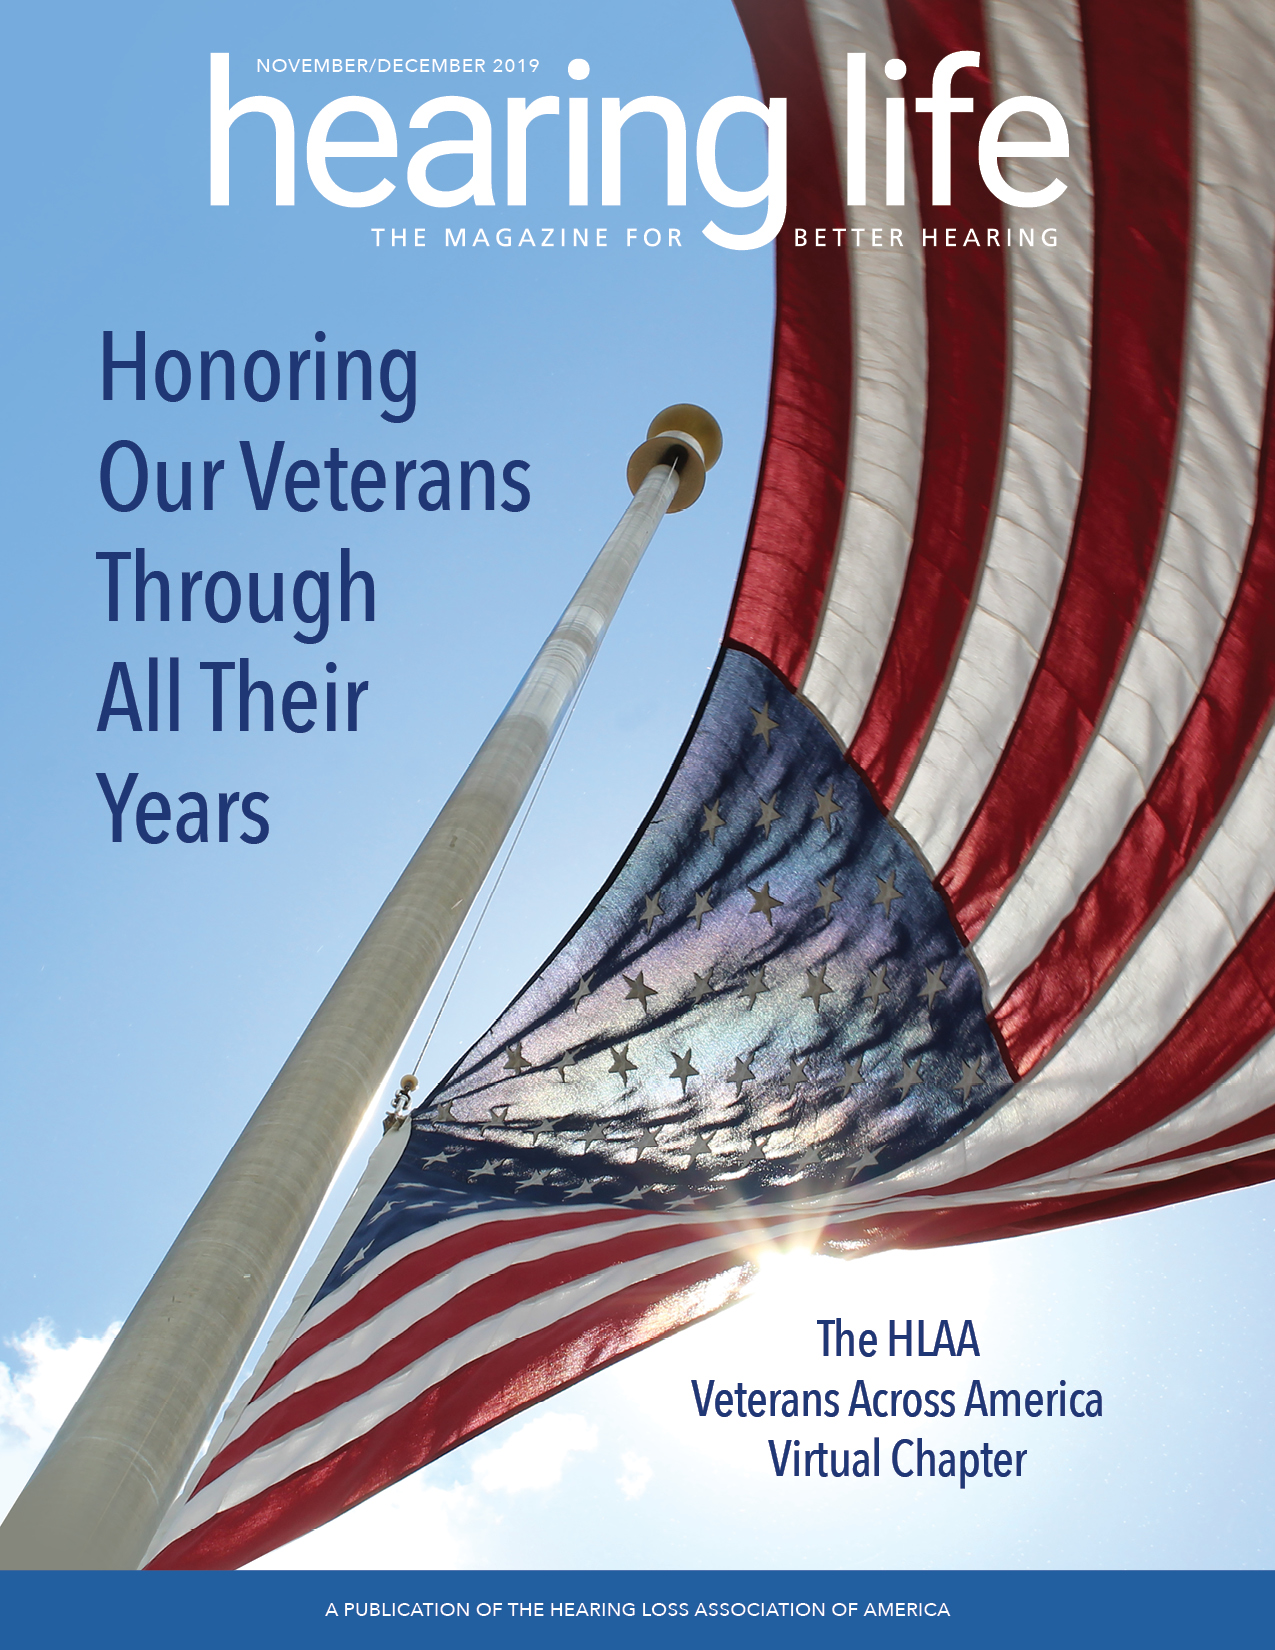 HLAA Hearing Life 2019 November/December Cover with an American flag waving in the wind with blue skies